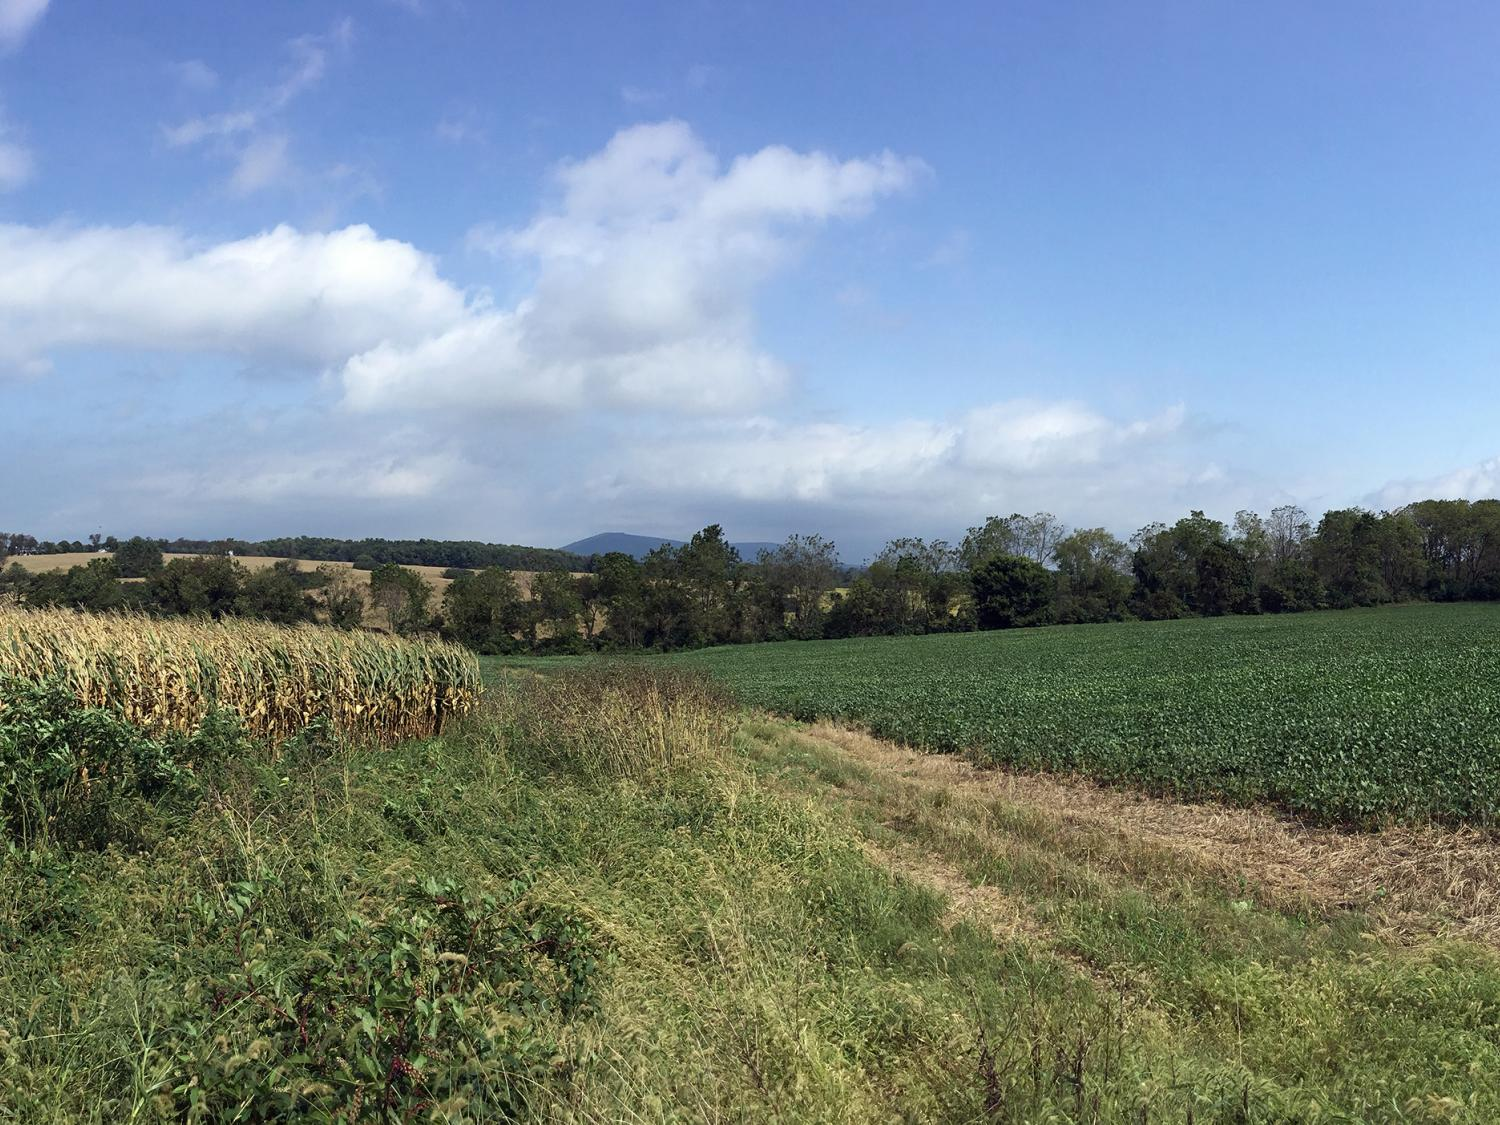 Panorama of Musser Gap with corn and soybean farms